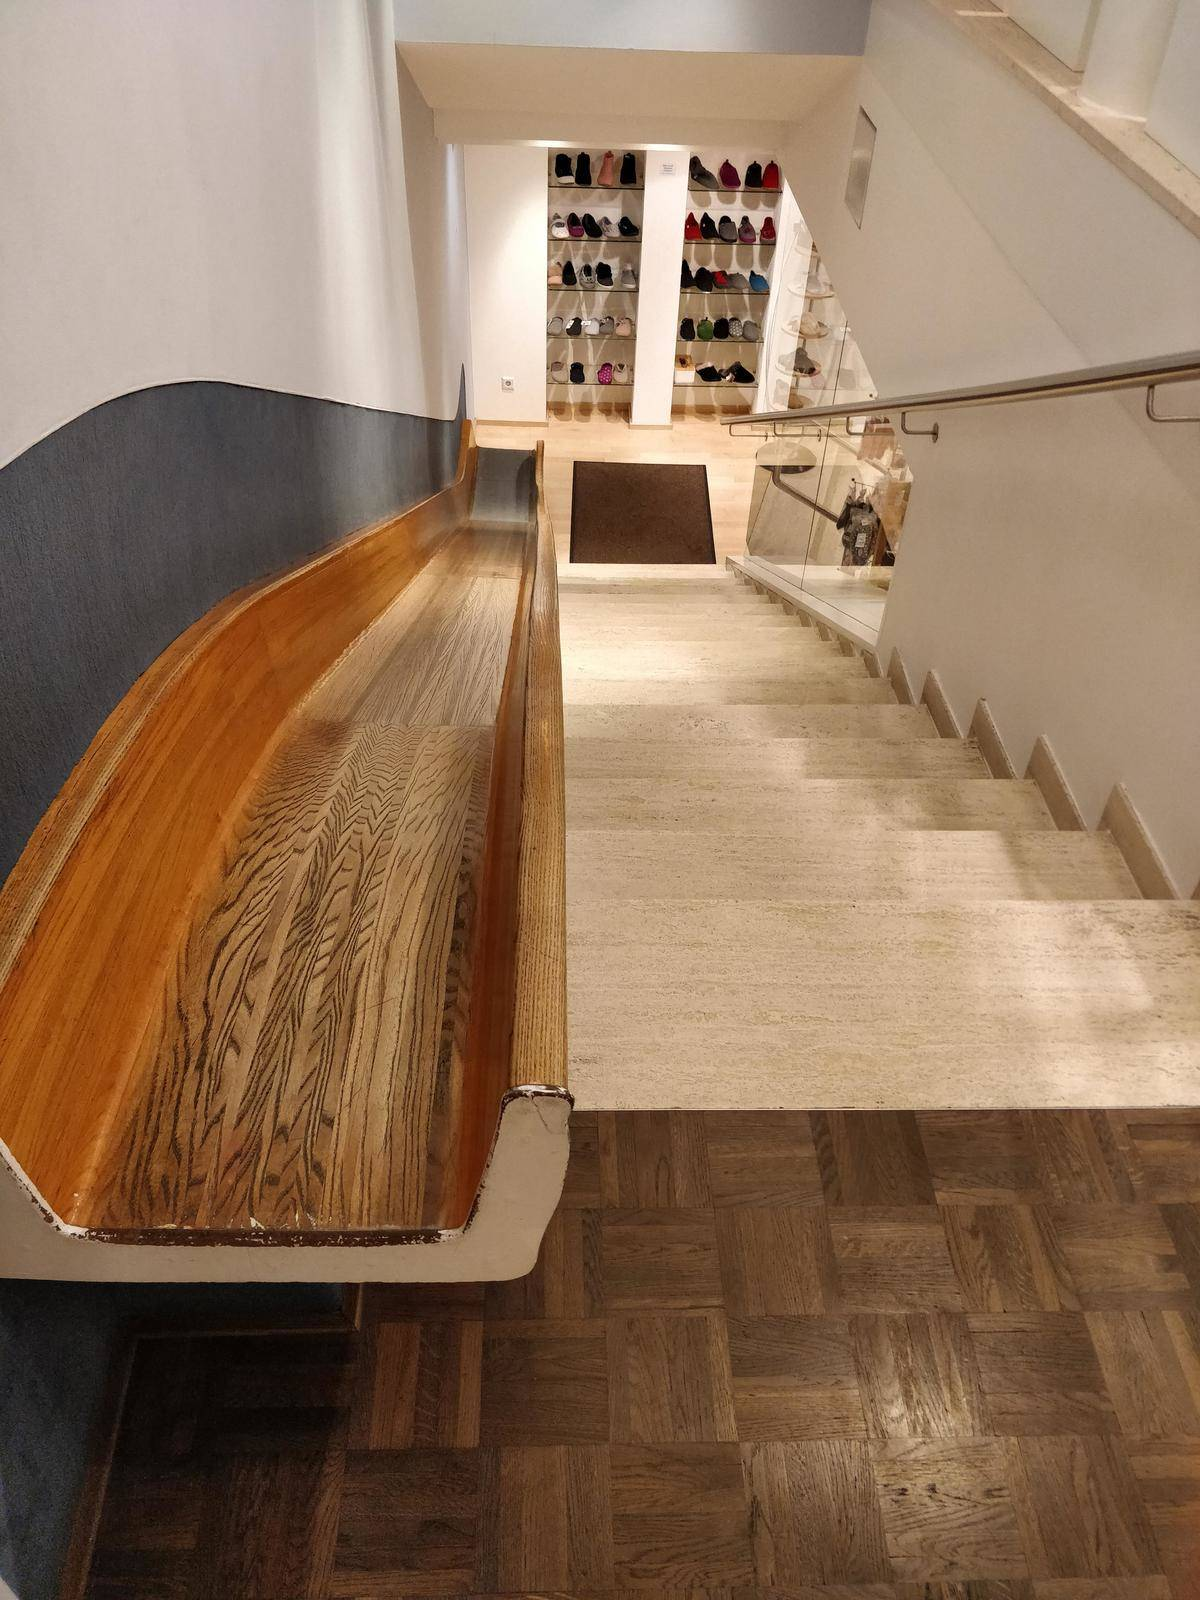 store has slide next to staircase to lower floor